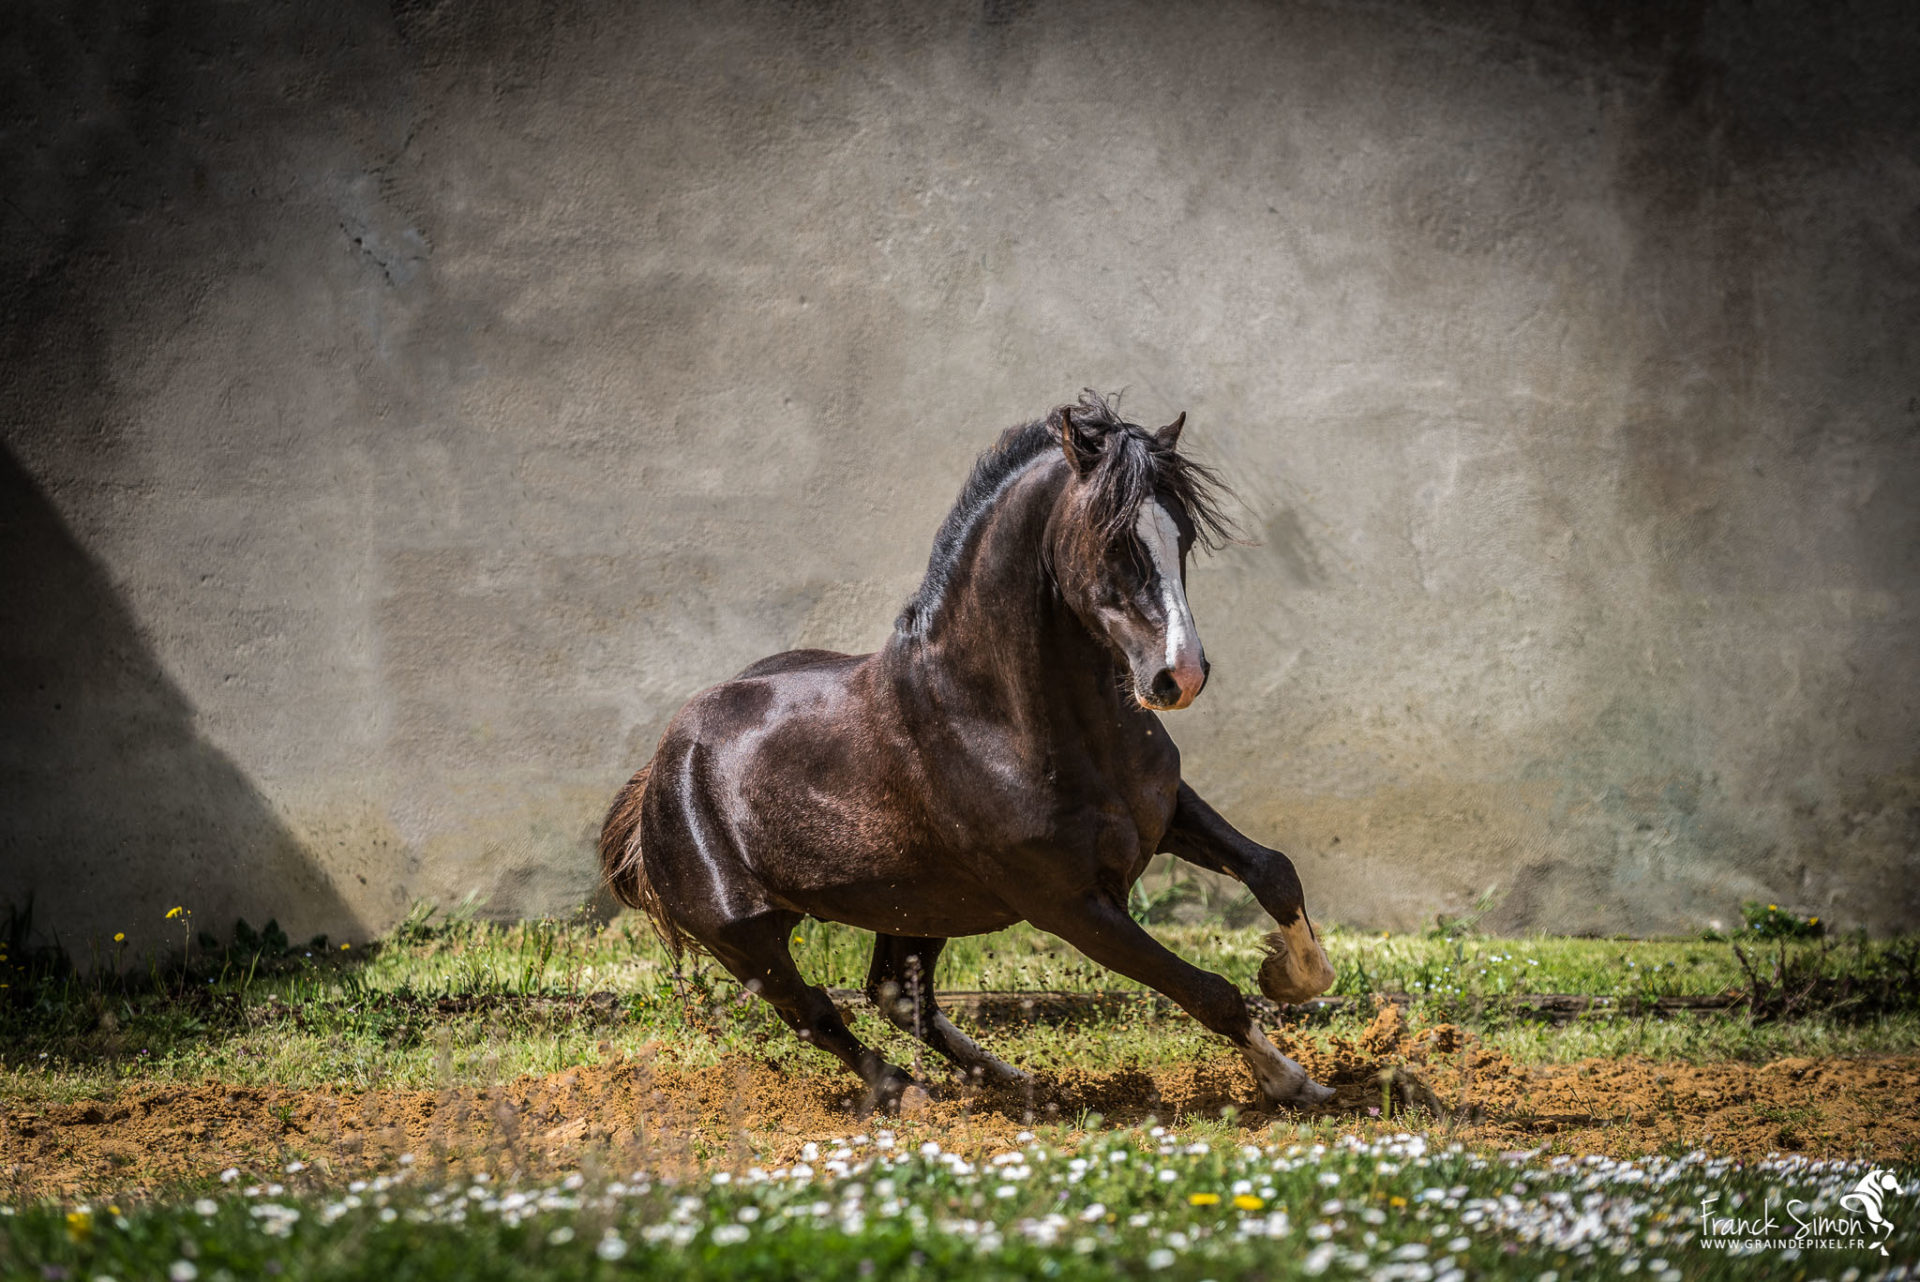 Photographier le cheval en mouvement comment faire ?